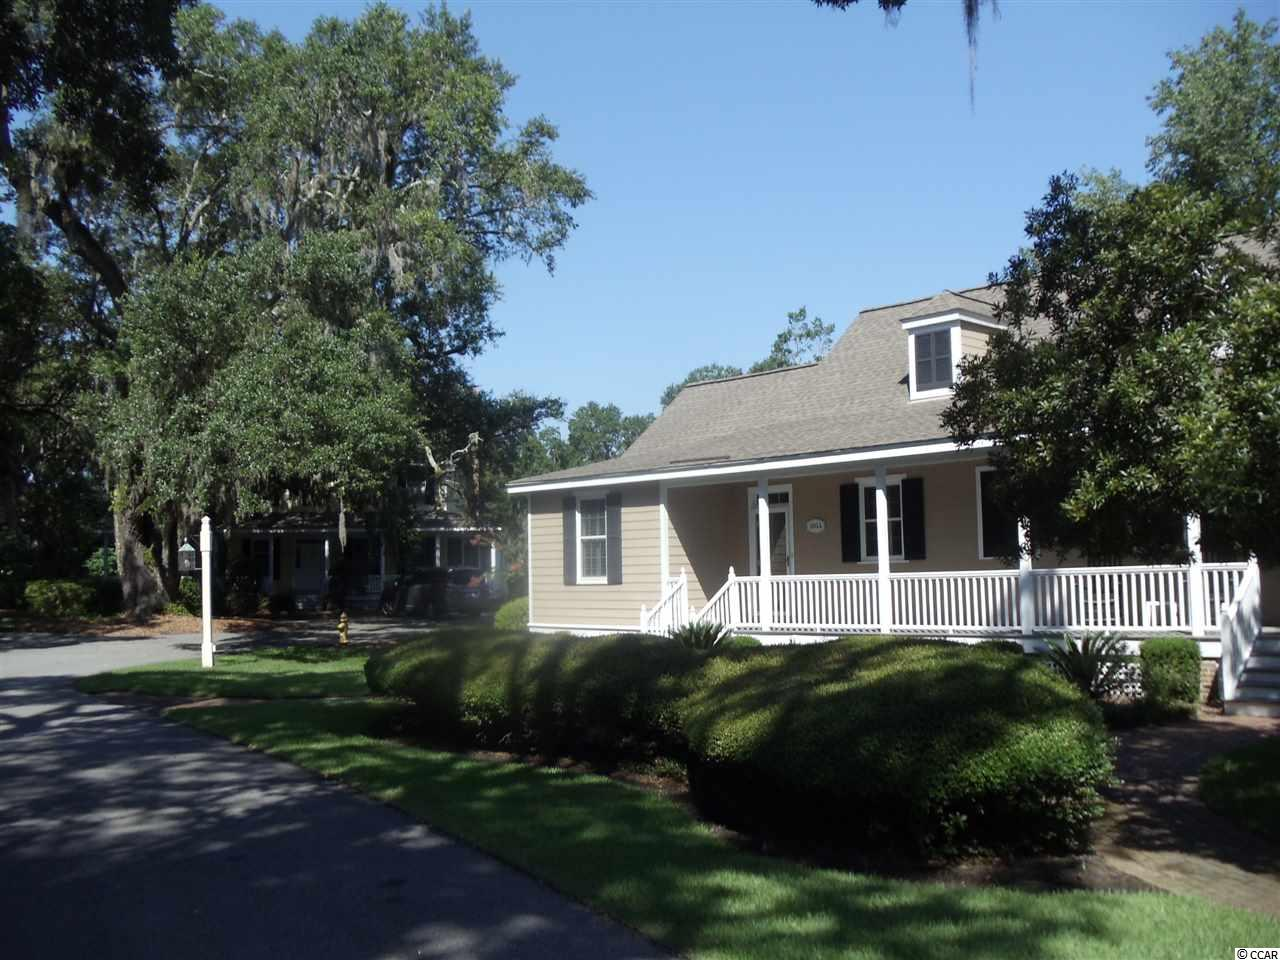 OAK GROVE COTII condo for sale in Murrells Inlet, SC